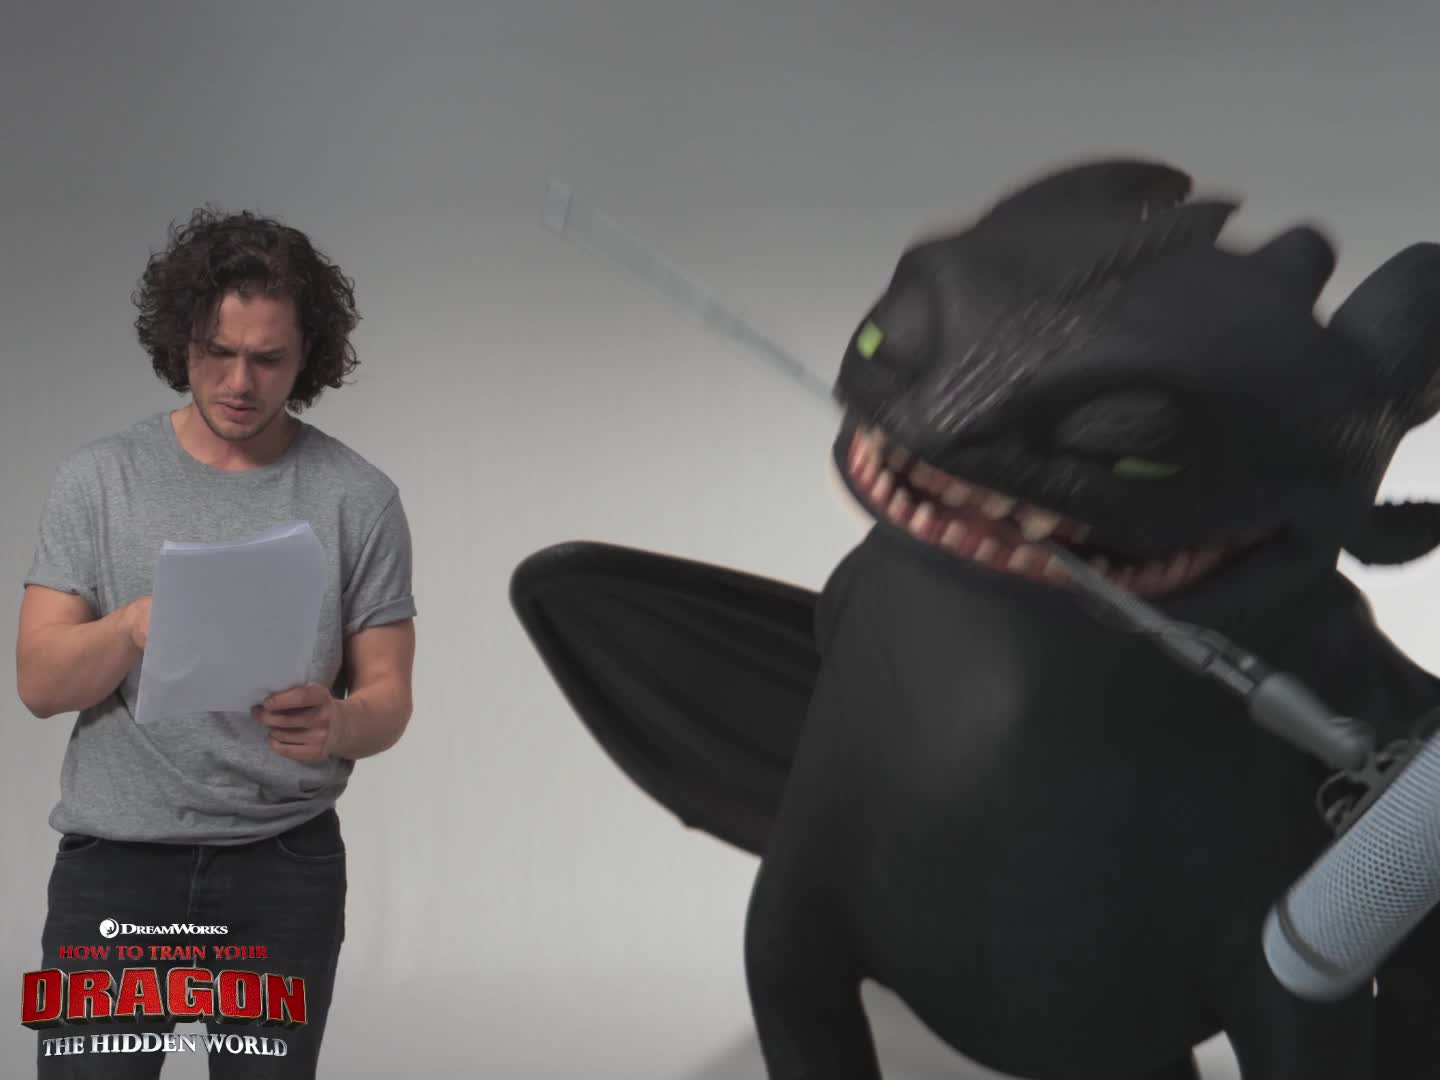 dead, done, how to train your dragon, how to train your dragon the hidden world, httyd, httyd3, kit harington, monday, mondays, toothless, wake up, Toothless Hits Kit Like a Monday GIFs